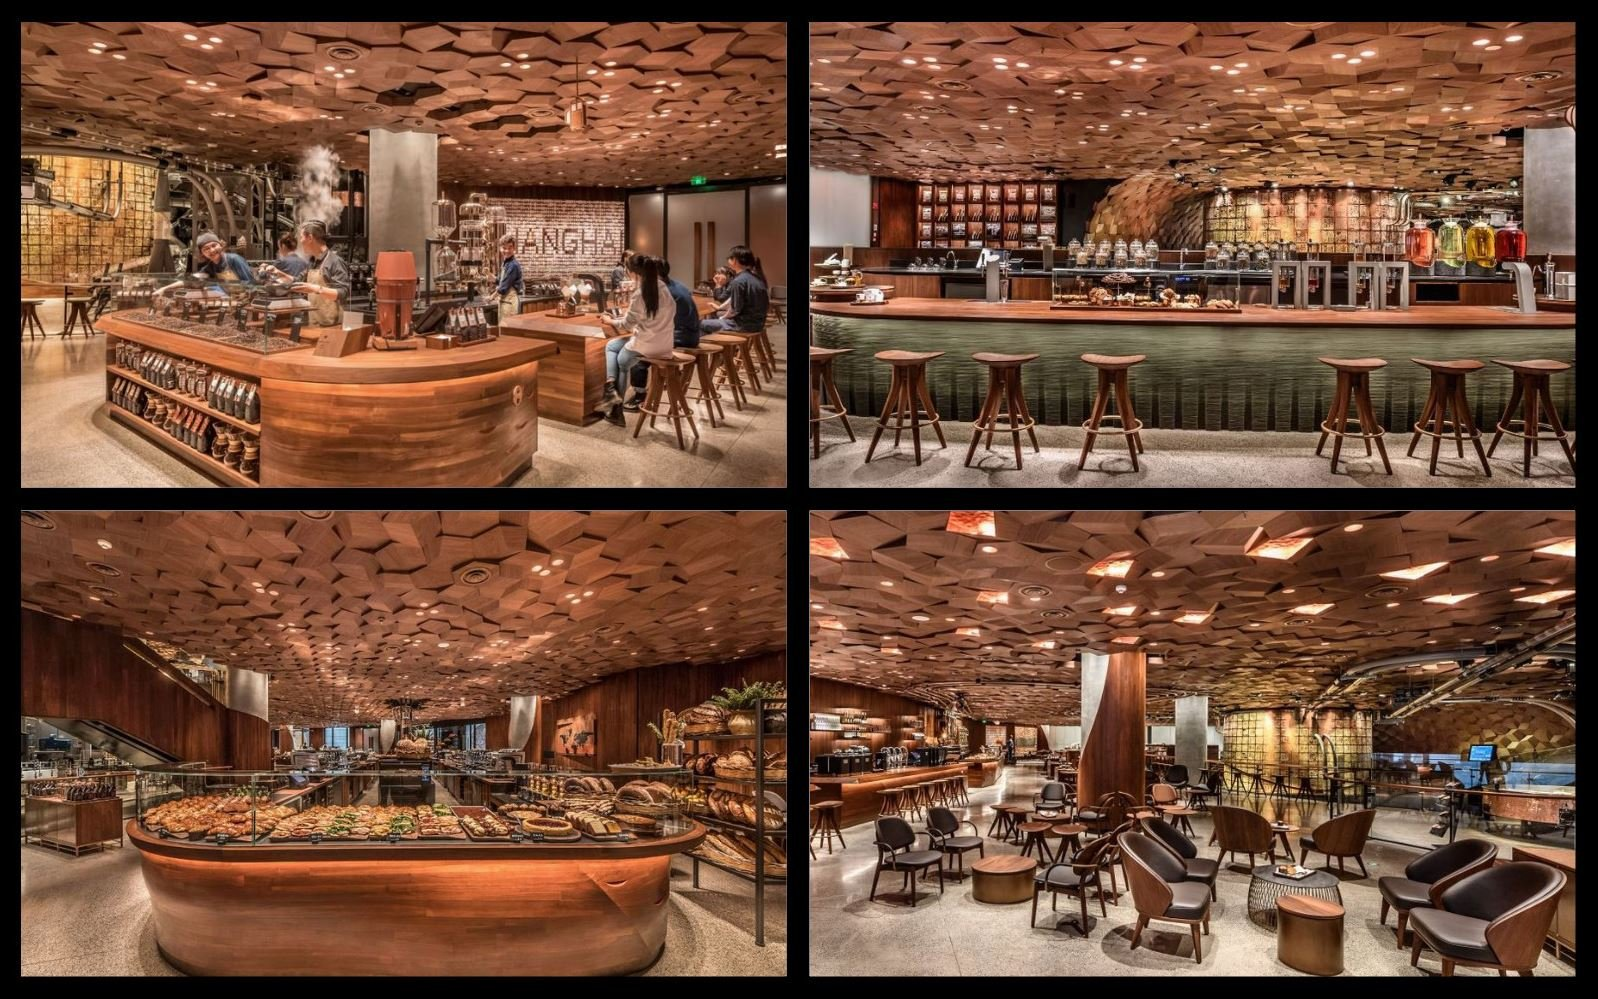 Starbucks Is Opening Its Largest Starbucks Ever – And You Have to See Inside